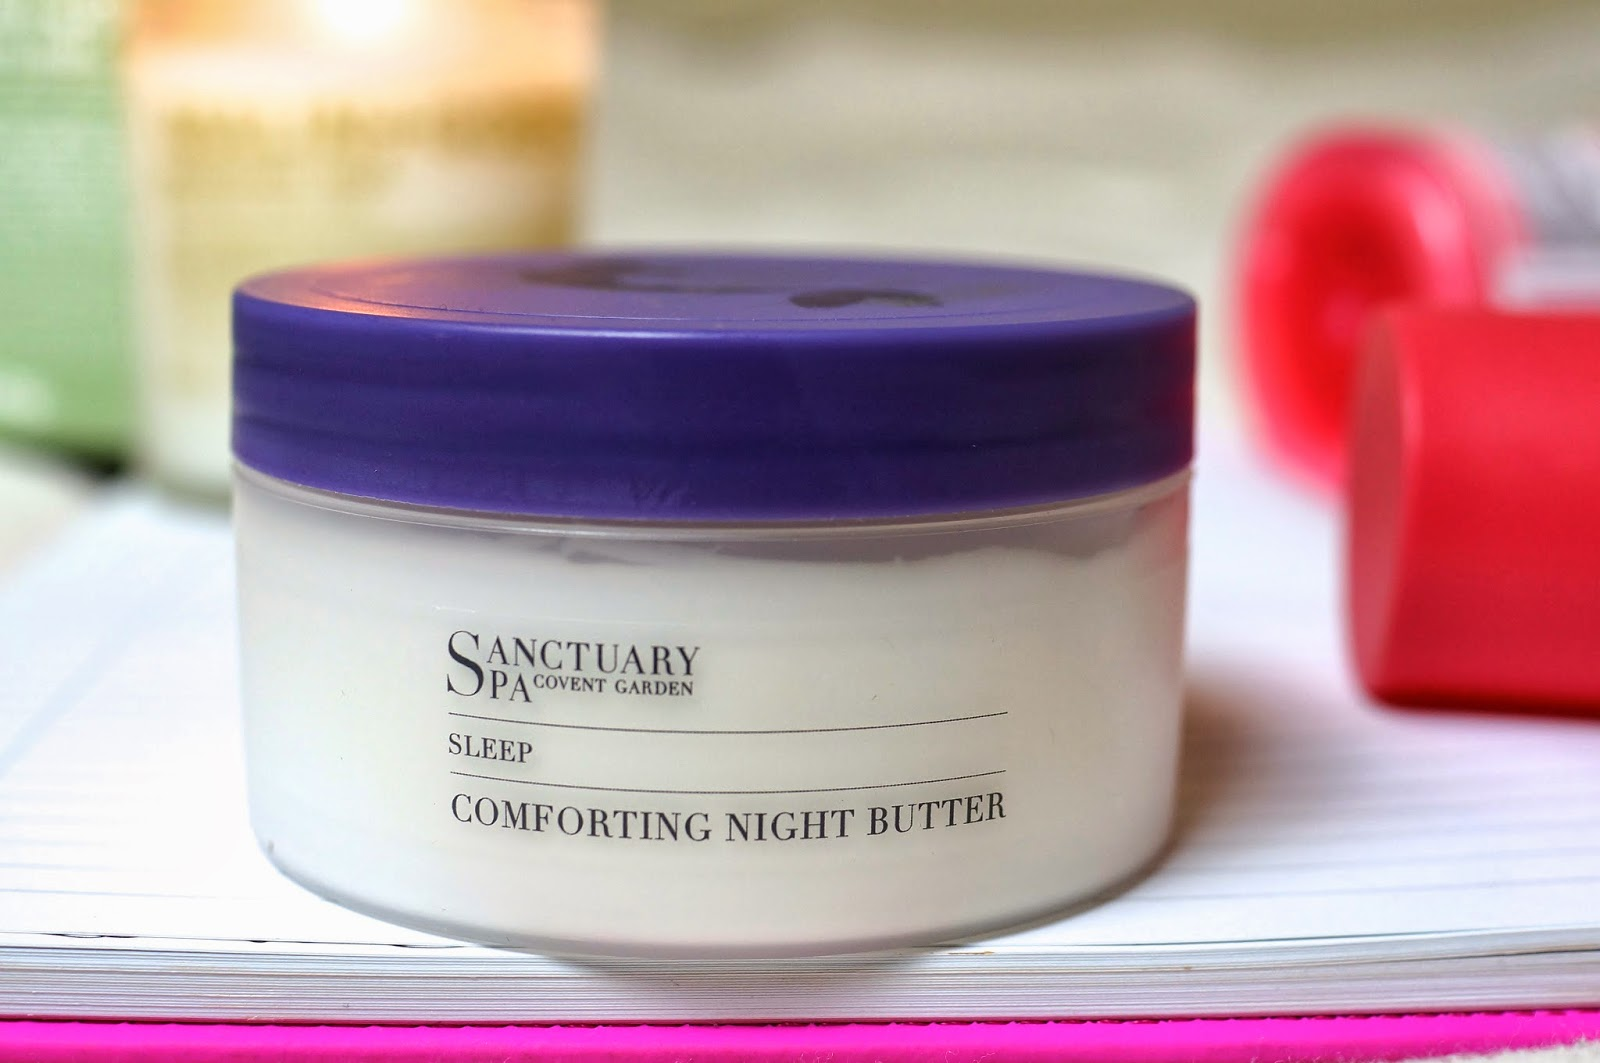 Sanctuary Spa Comforting Night Butter